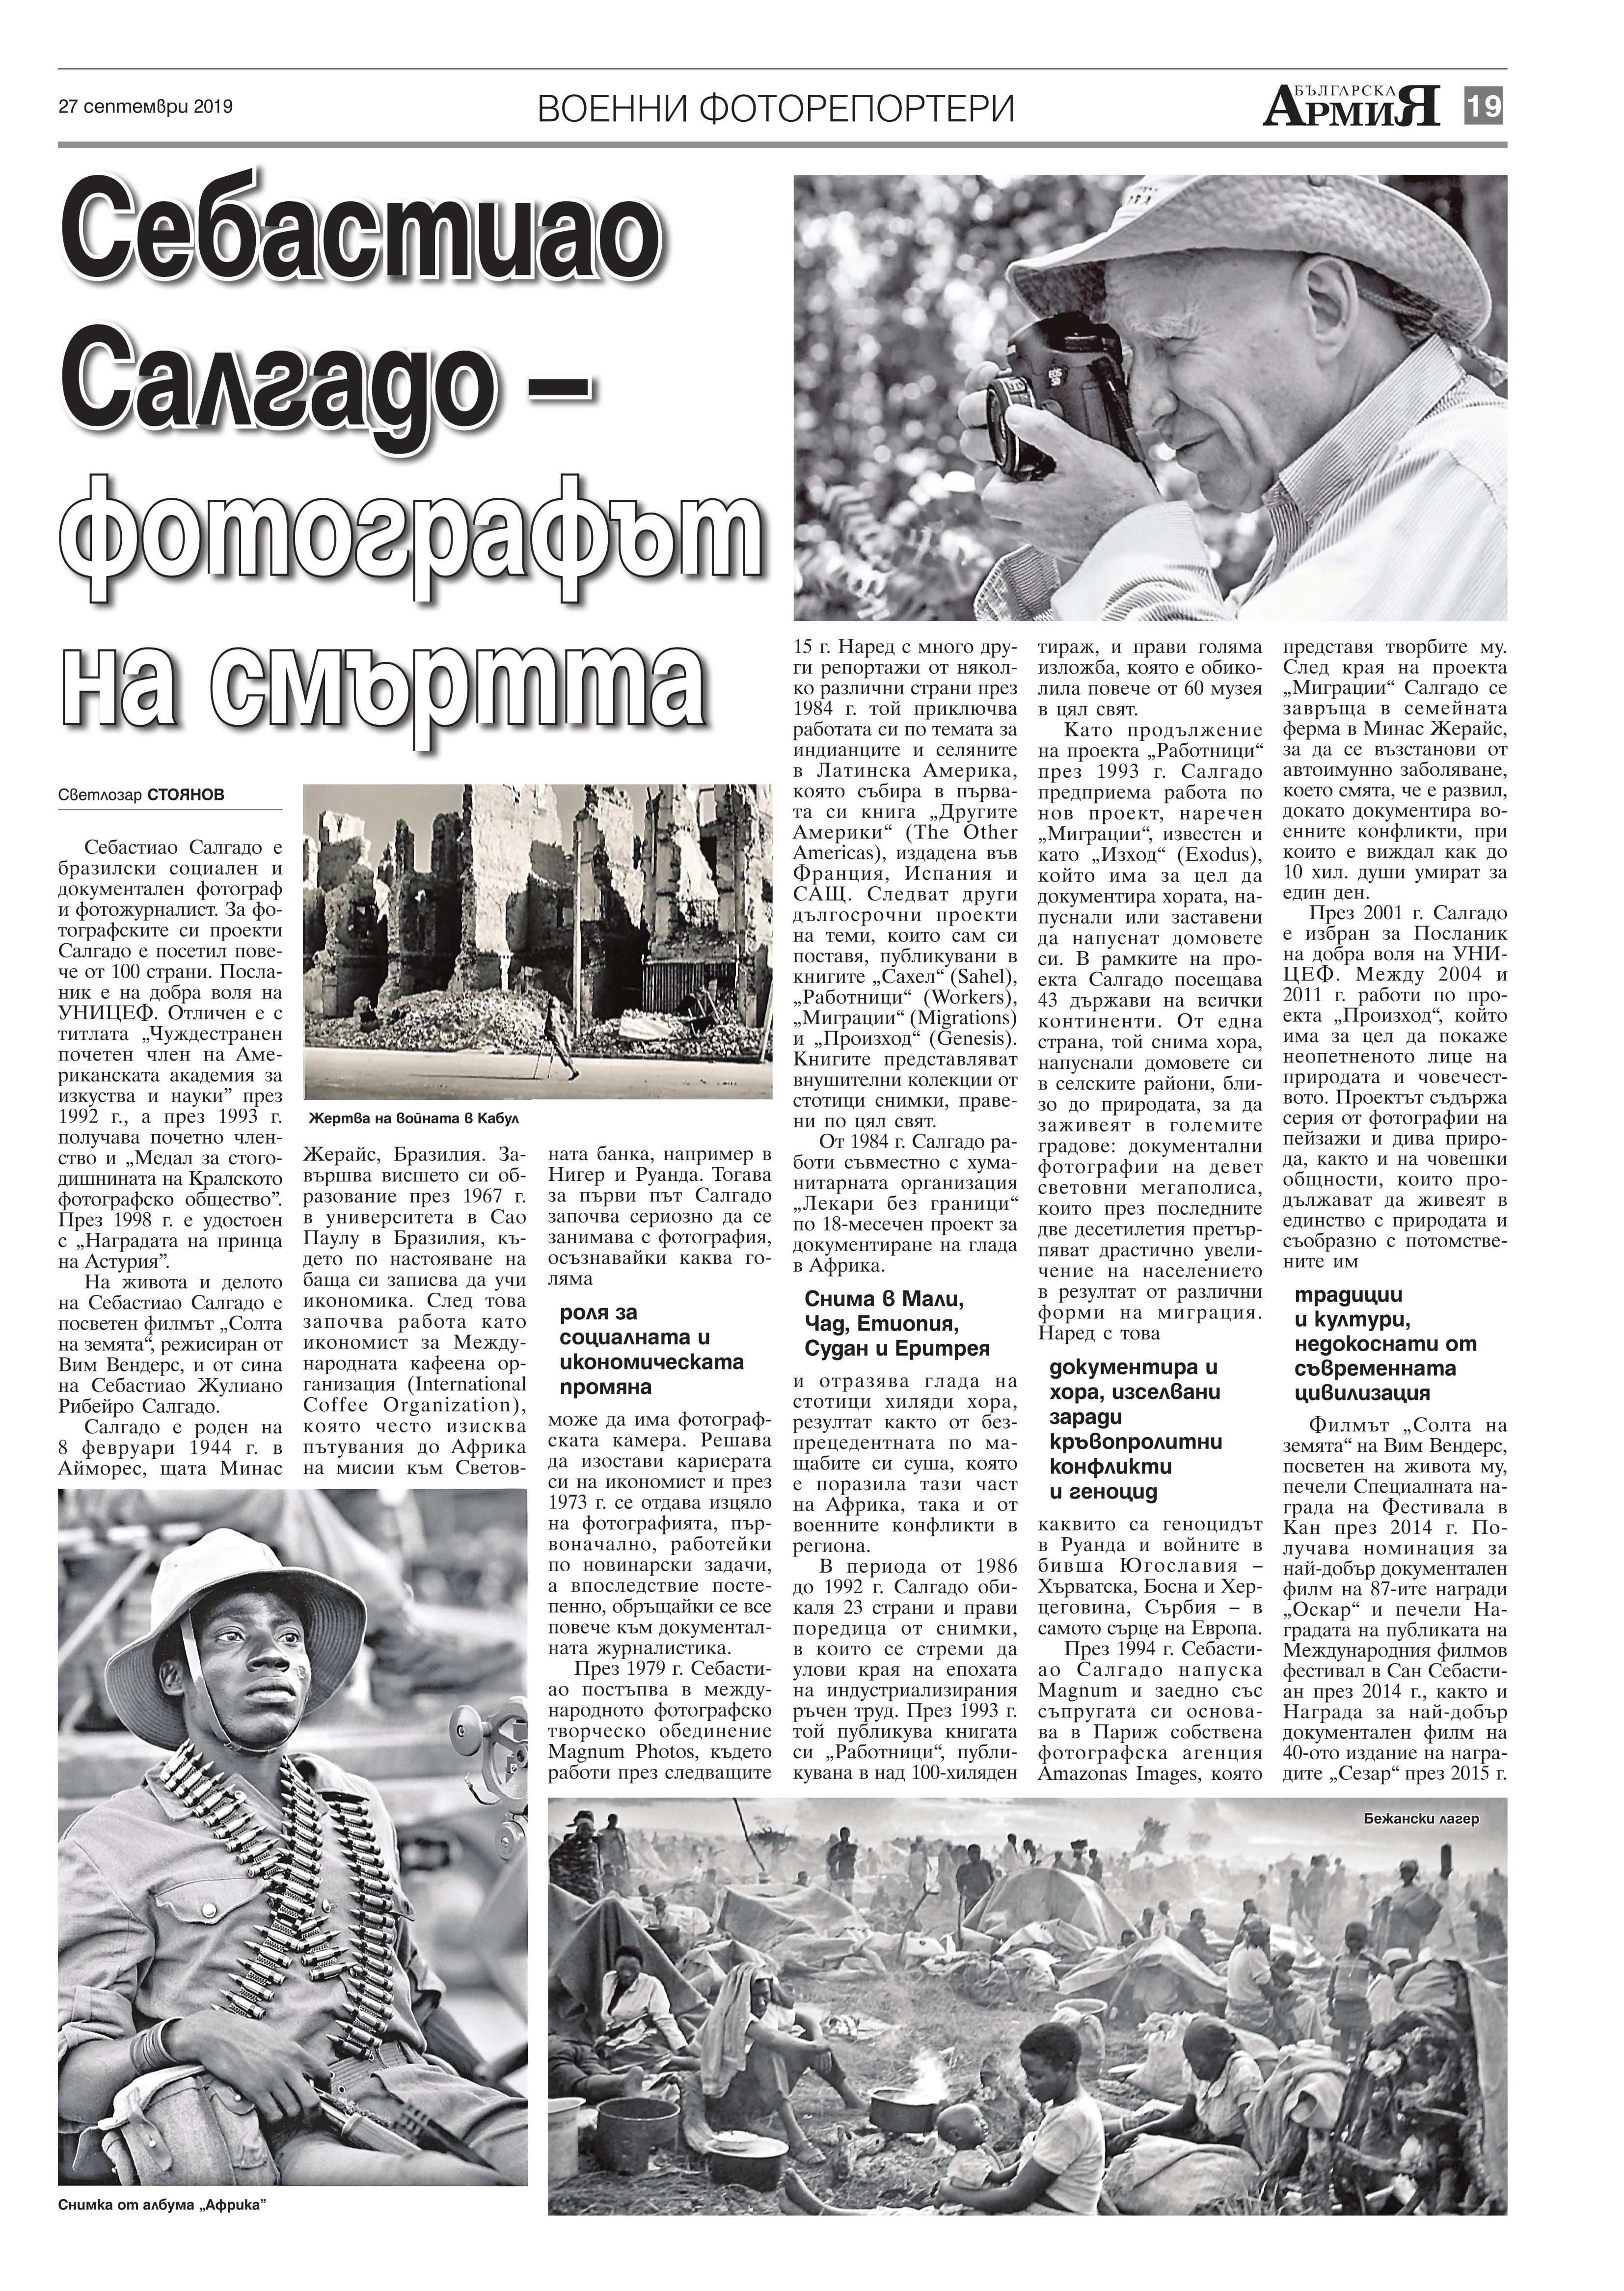 https://www.armymedia.bg/wp-content/uploads/2015/06/19.page1_-111.jpg